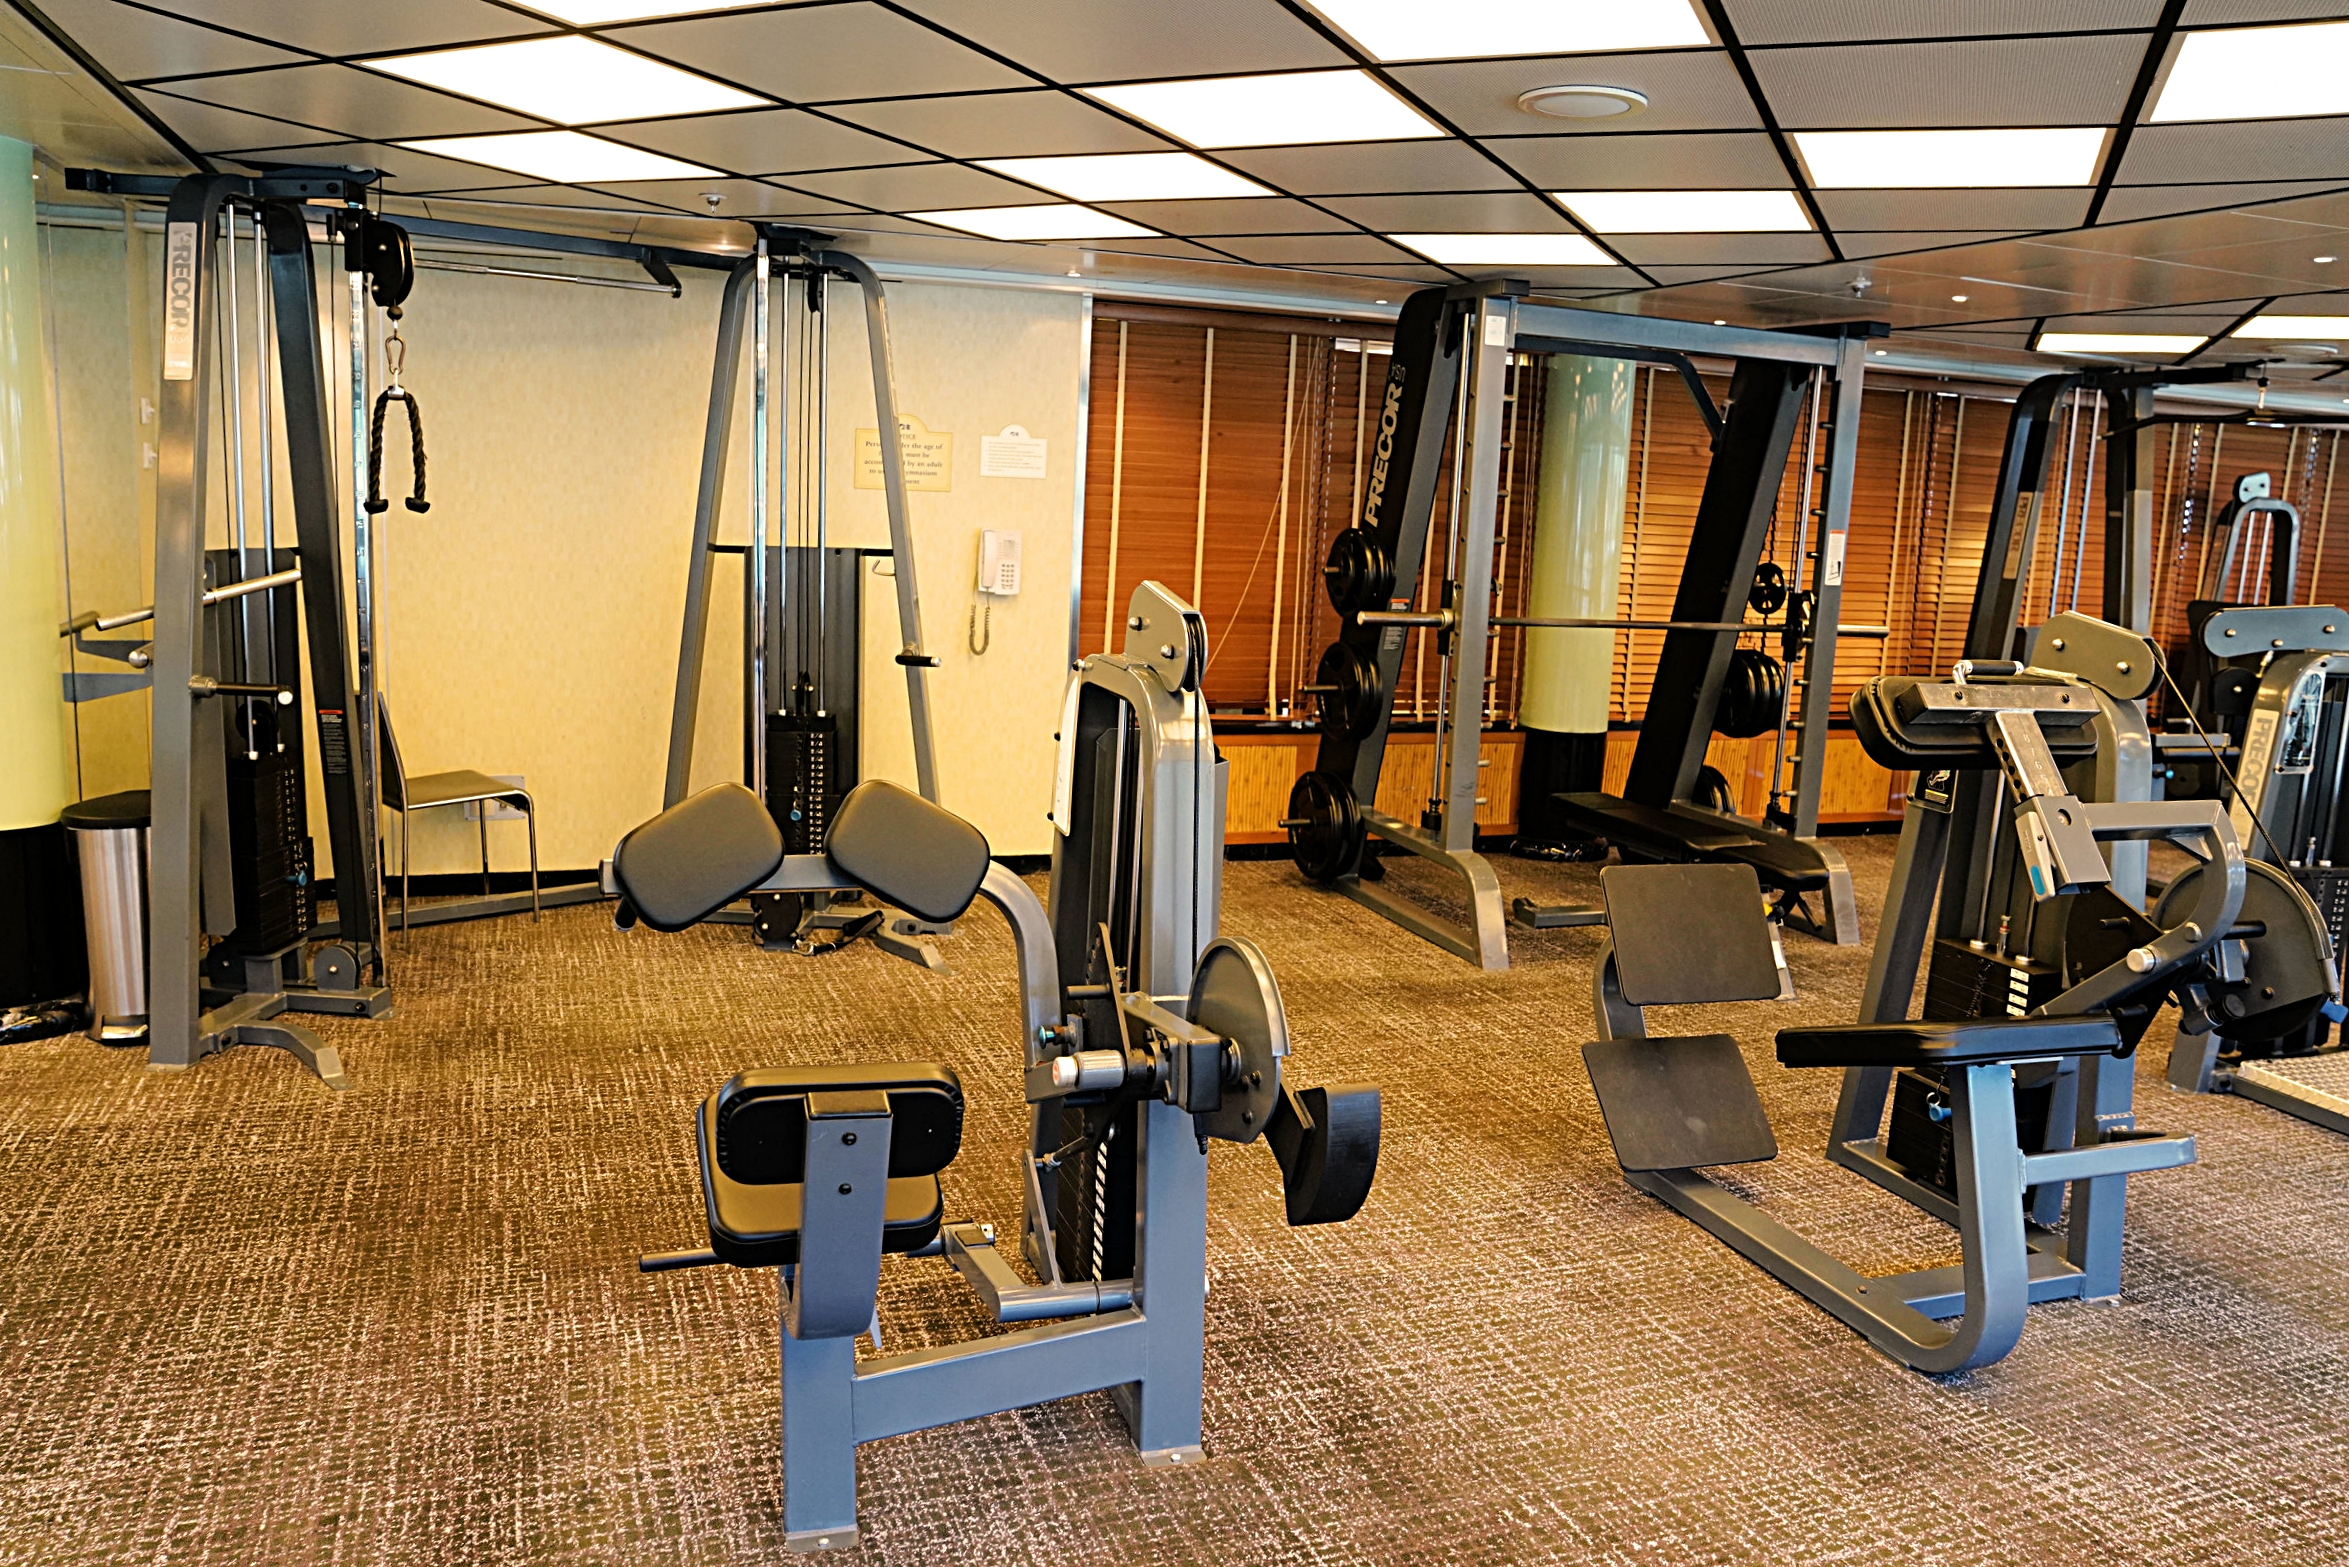 The well equipped and spacious gym.